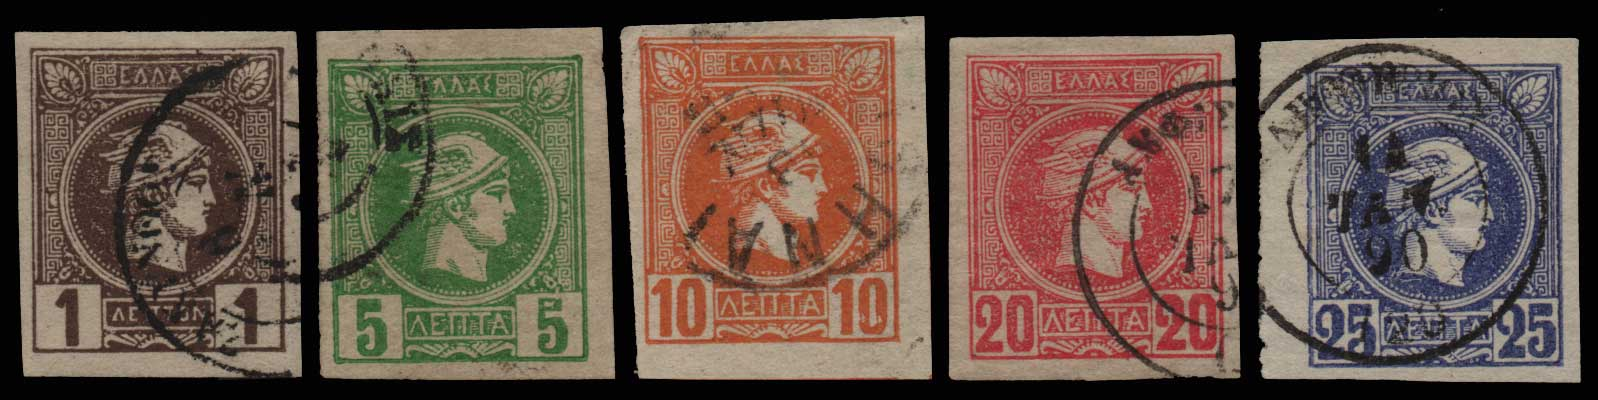 Lot 406 - GREECE-  SMALL HERMES HEAD ATHENSPRINTING - 1st PERIOD -  Athens Auctions Public Auction 64 General Stamp Sale